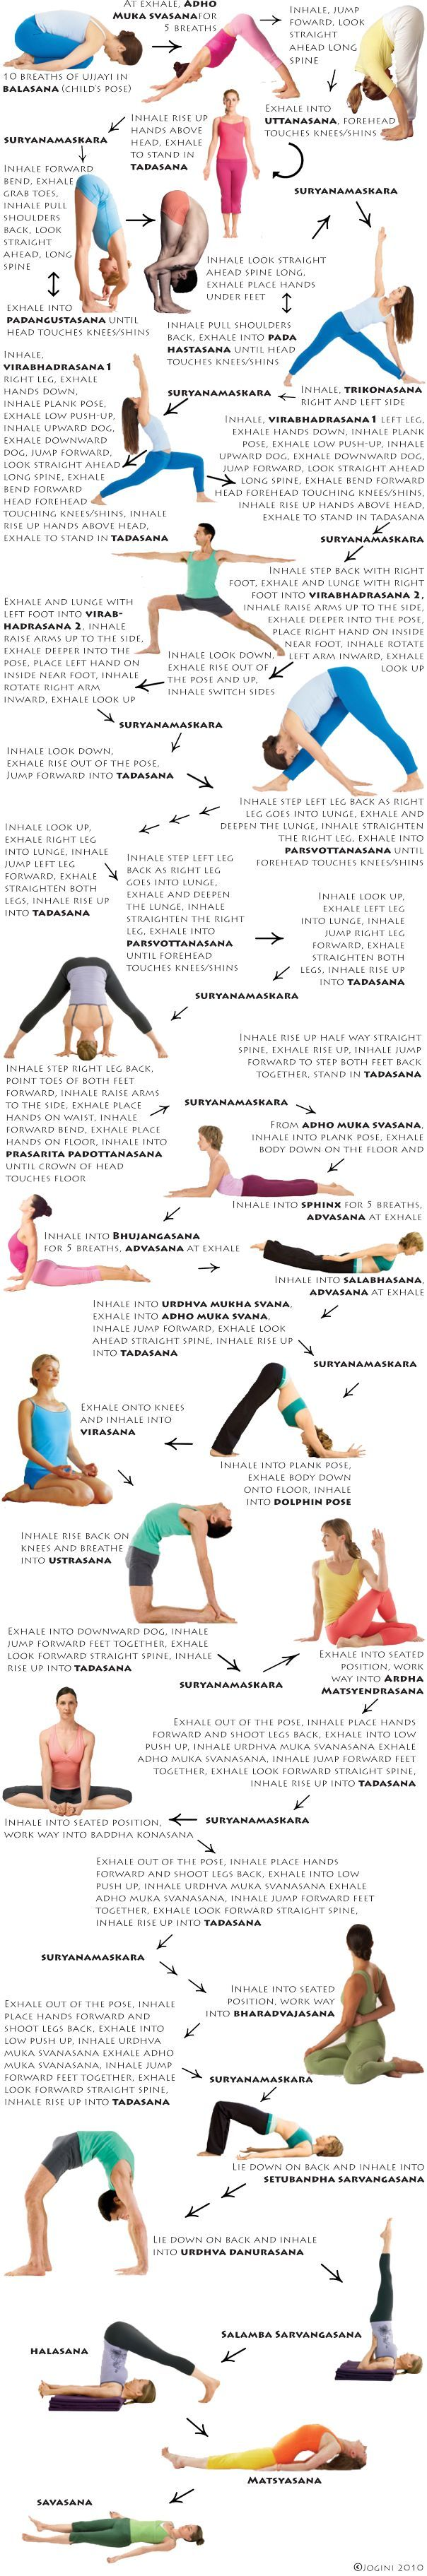 Yoga helpful for reducing chronic low back pain.